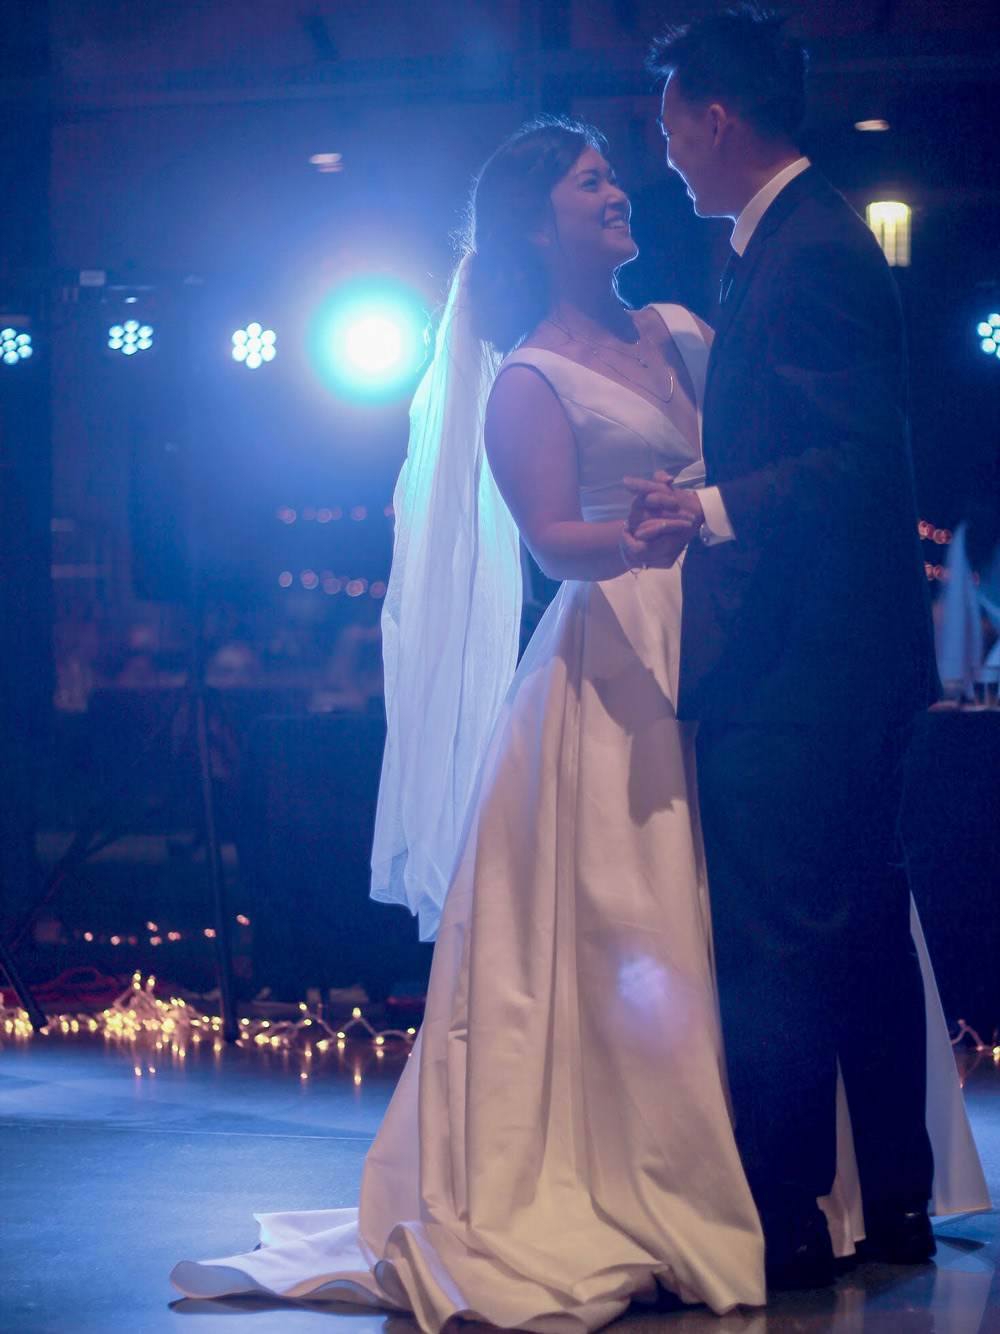 A newly married couple dances with sparkly lights in the background